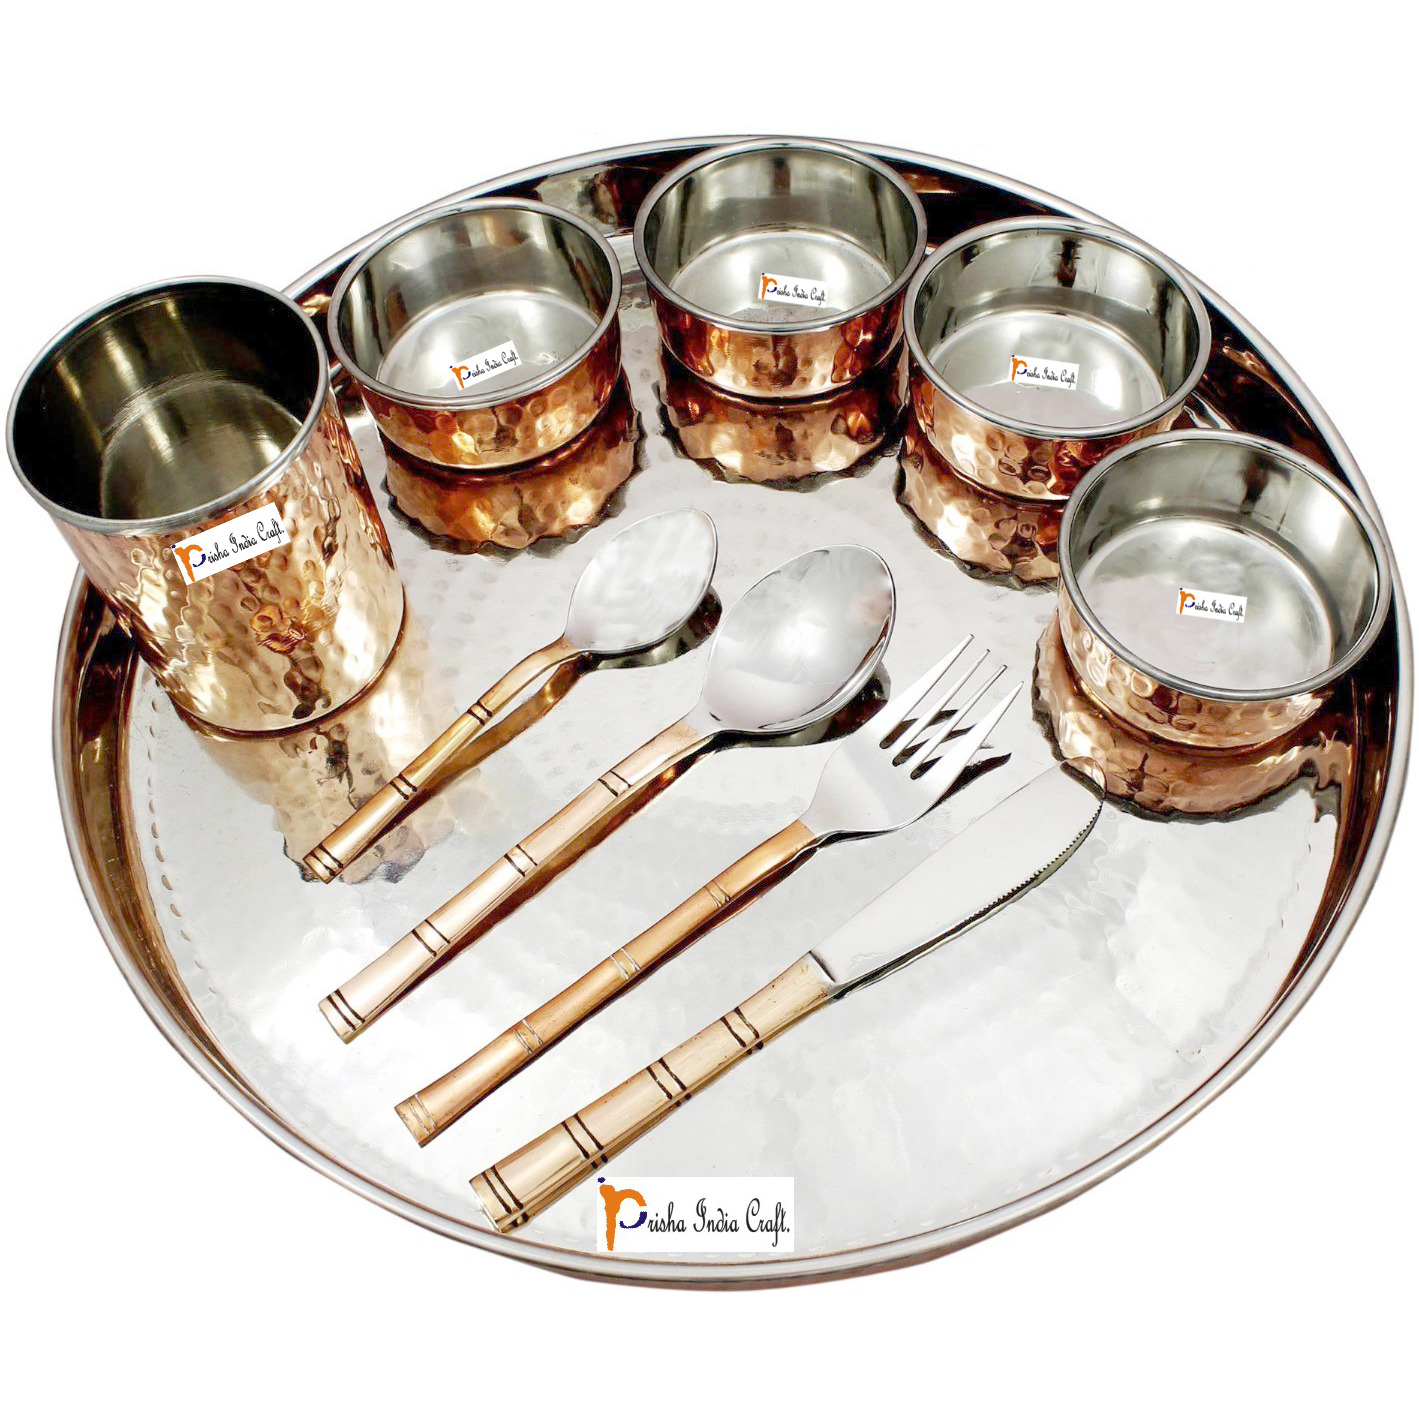 Prisha India Craft B. Set of 5 Dinnerware Traditional Stainless Steel Copper Dinner Set of Thali Plate, Bowls, Glass and Spoons, Dia 13  With 1 Pure Copper Pitcher Jug - Christmas Gift